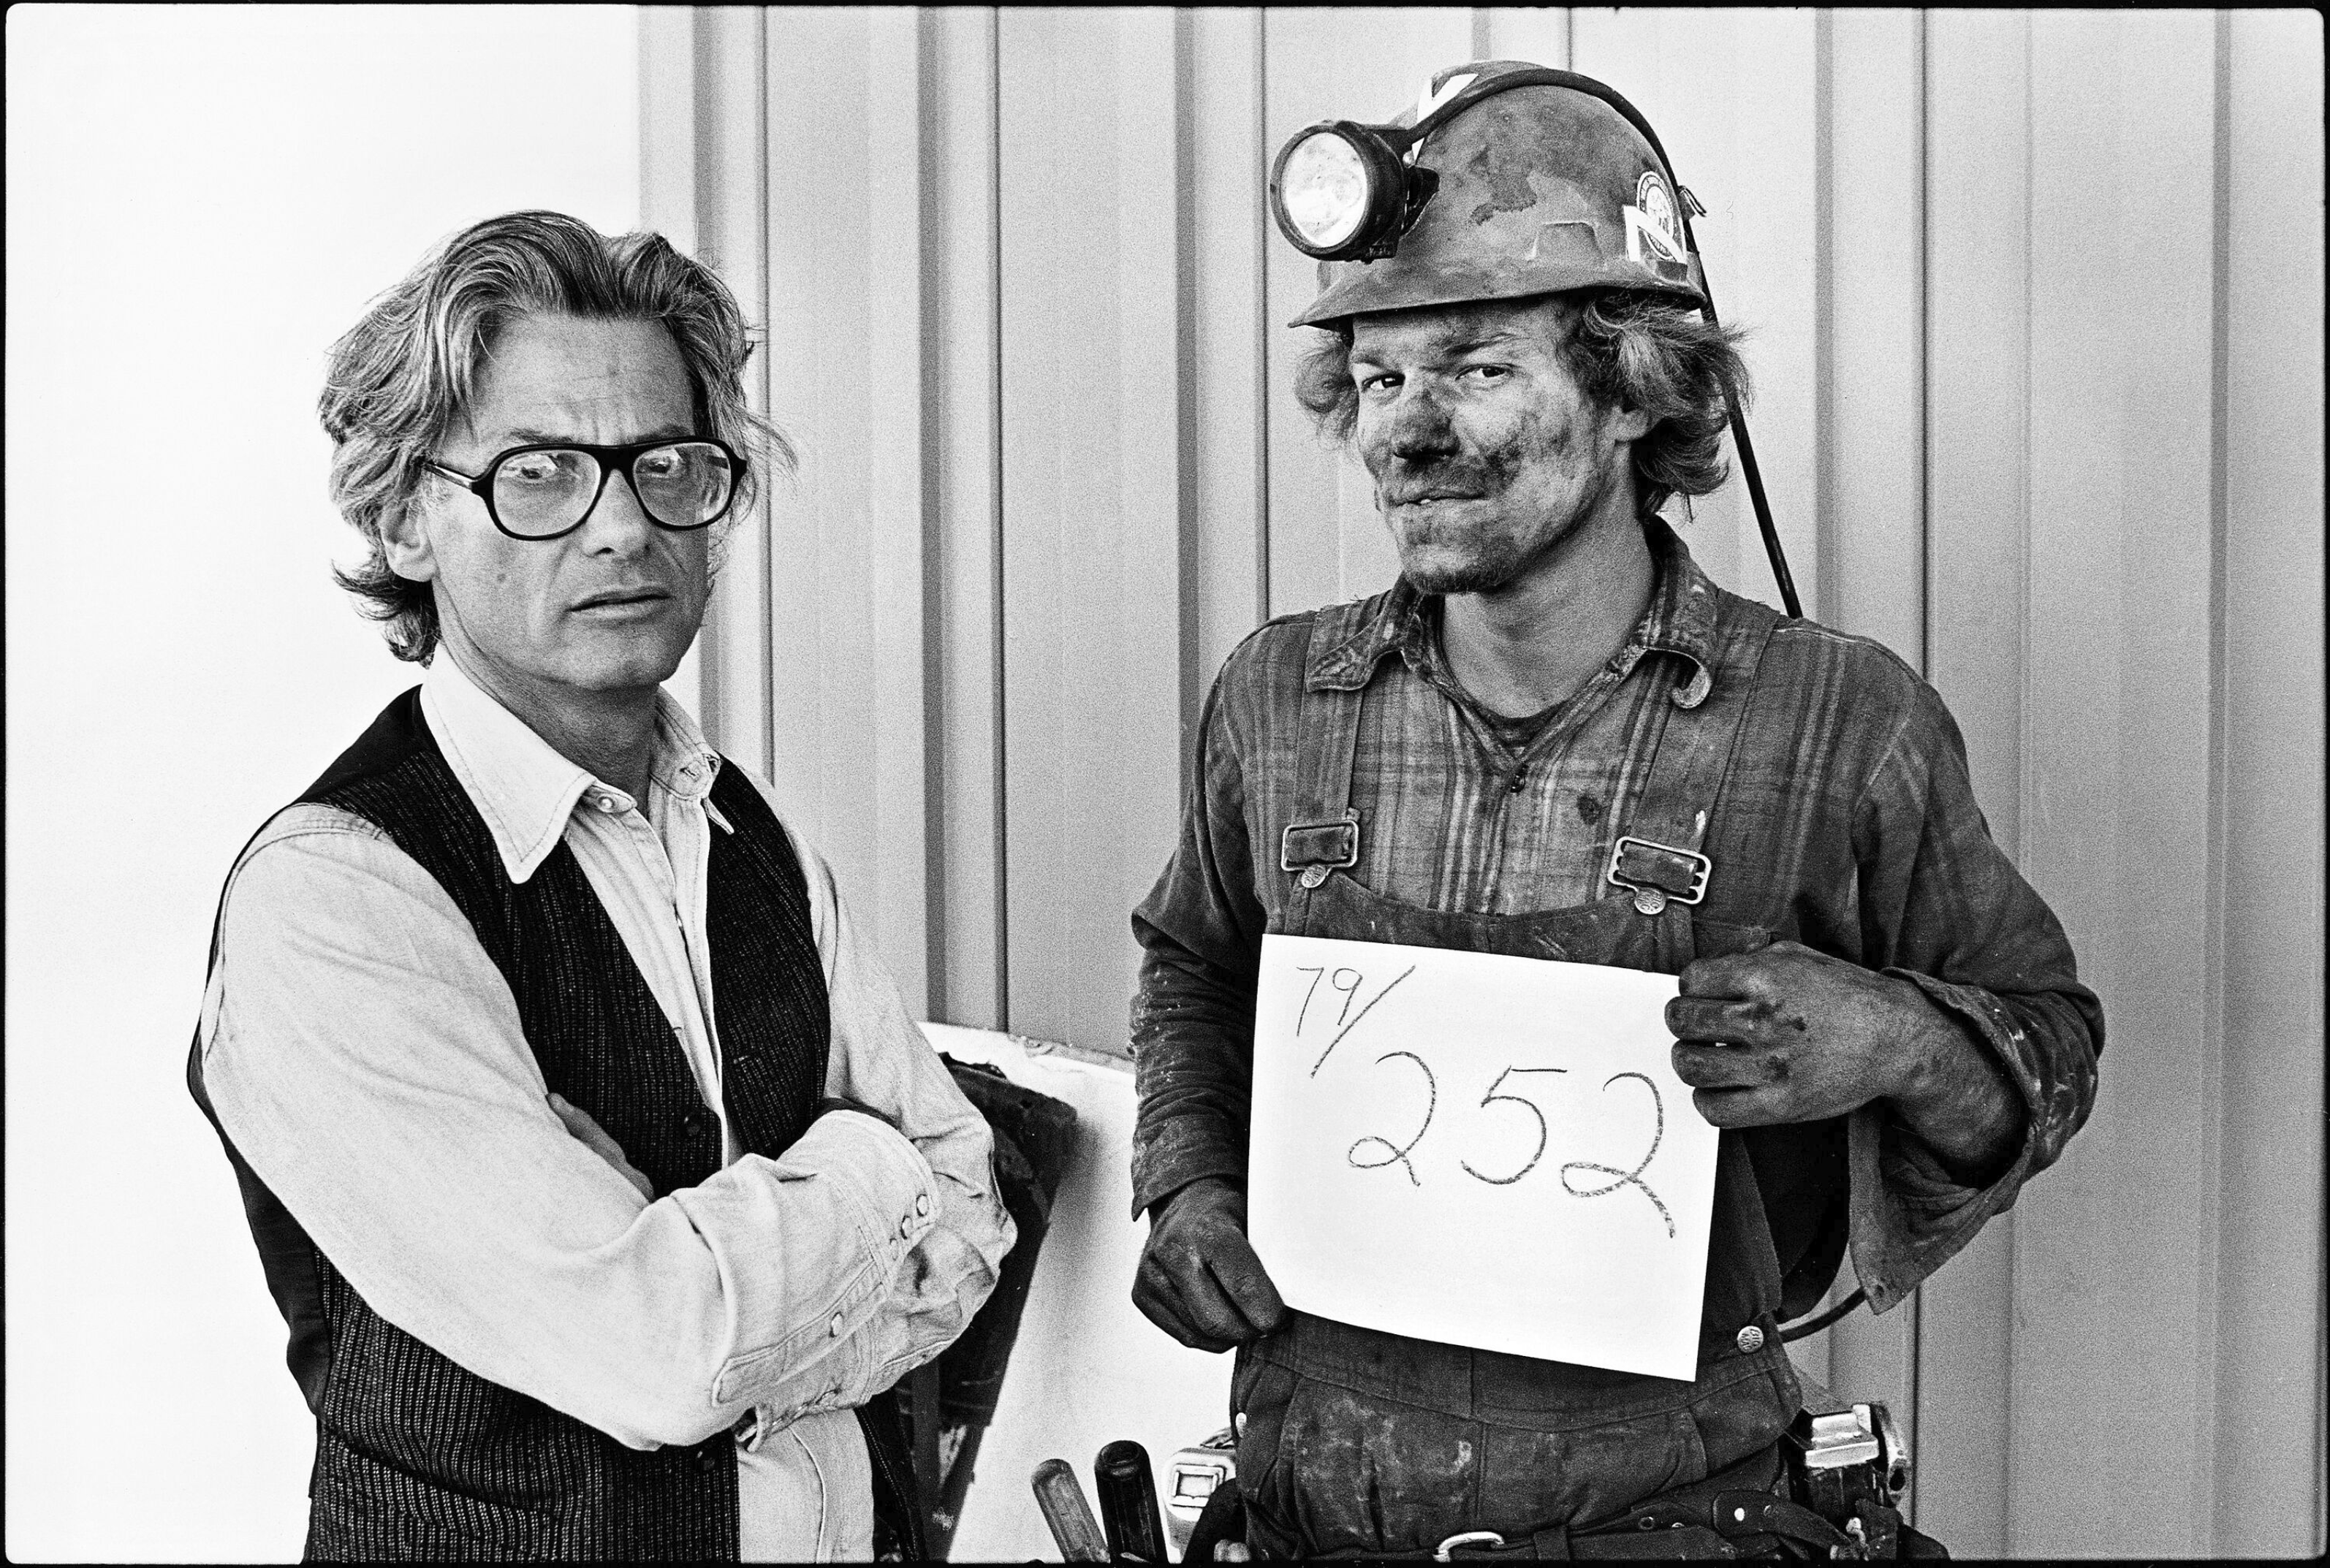 Richard Avedon and Coal Miner, Reliance, Wyoming, 1980